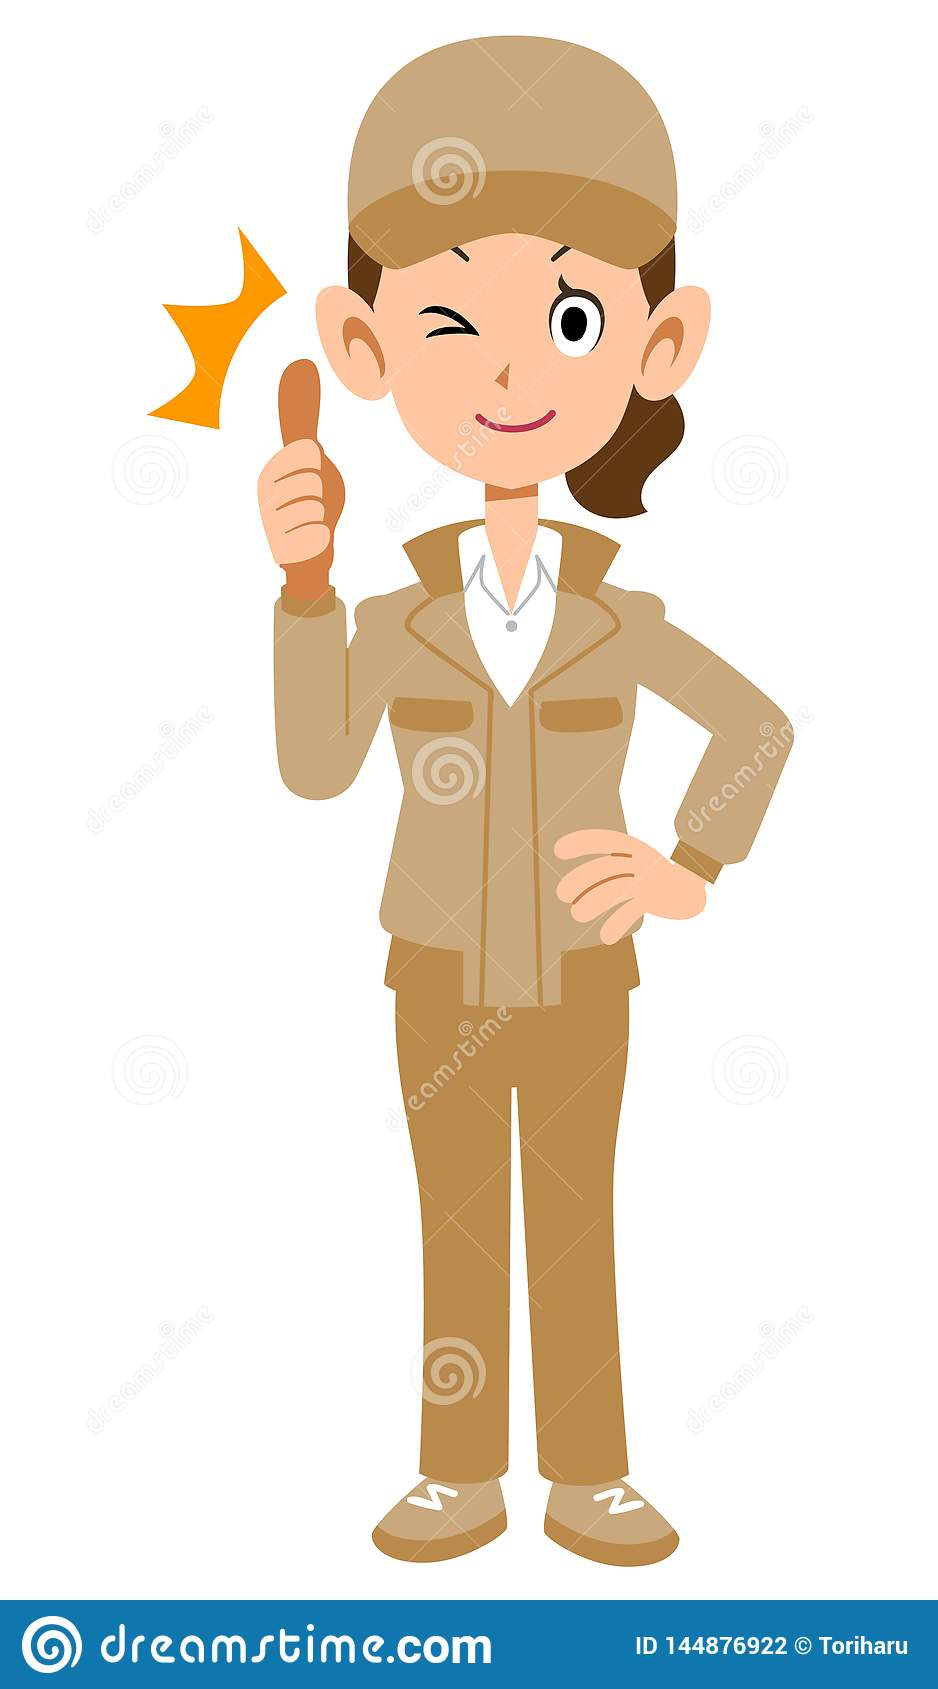 Woman in beige workwear to thumb up